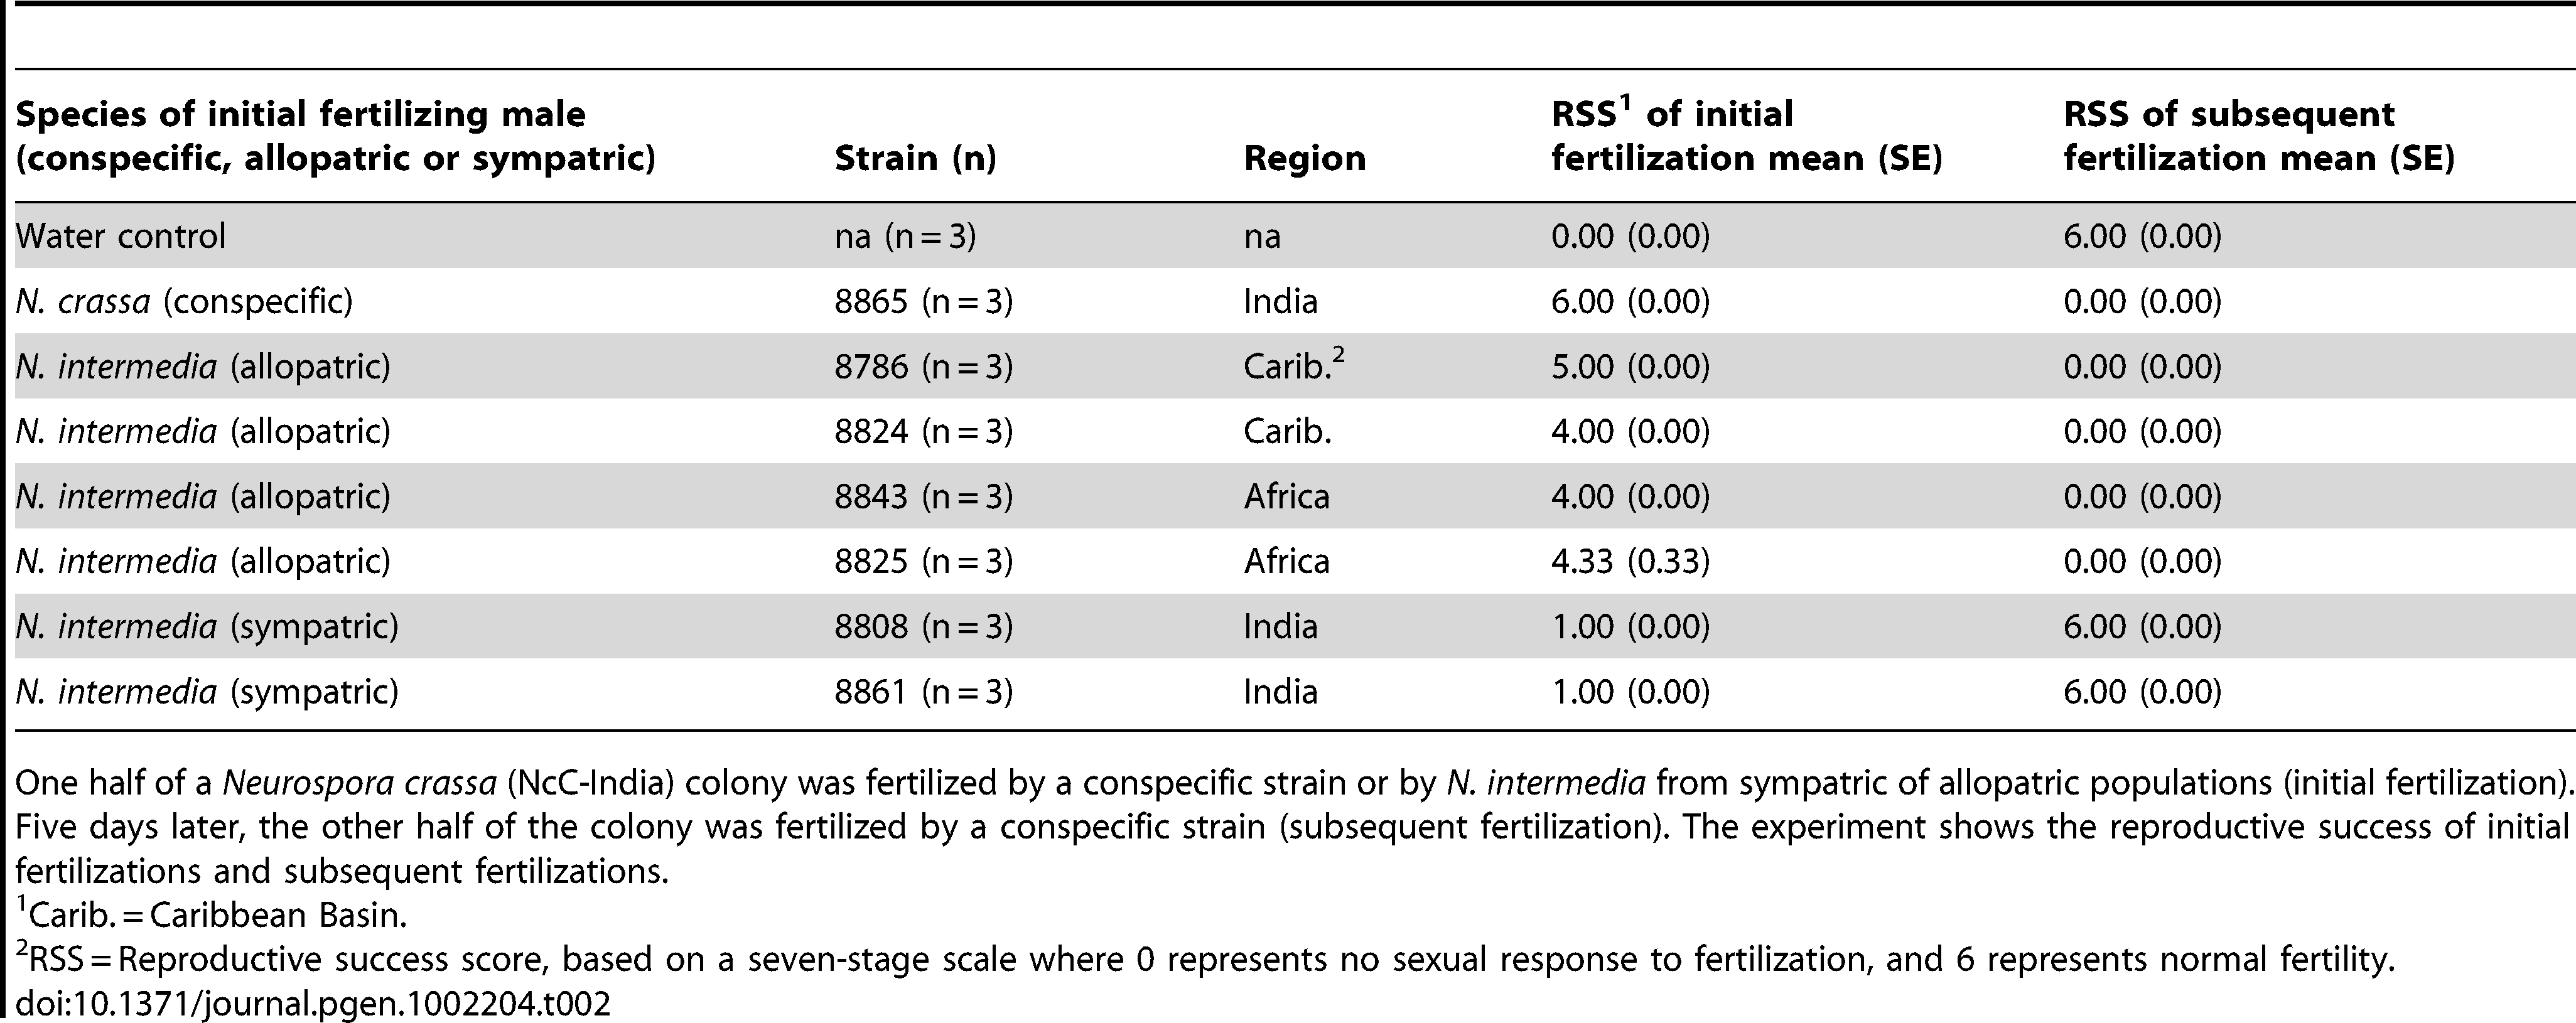 The effect of initial fertilization on subsequent maternal fertility in sequentially fertilized <i>Neurospora crassa</i> (NcC-India) colonies.